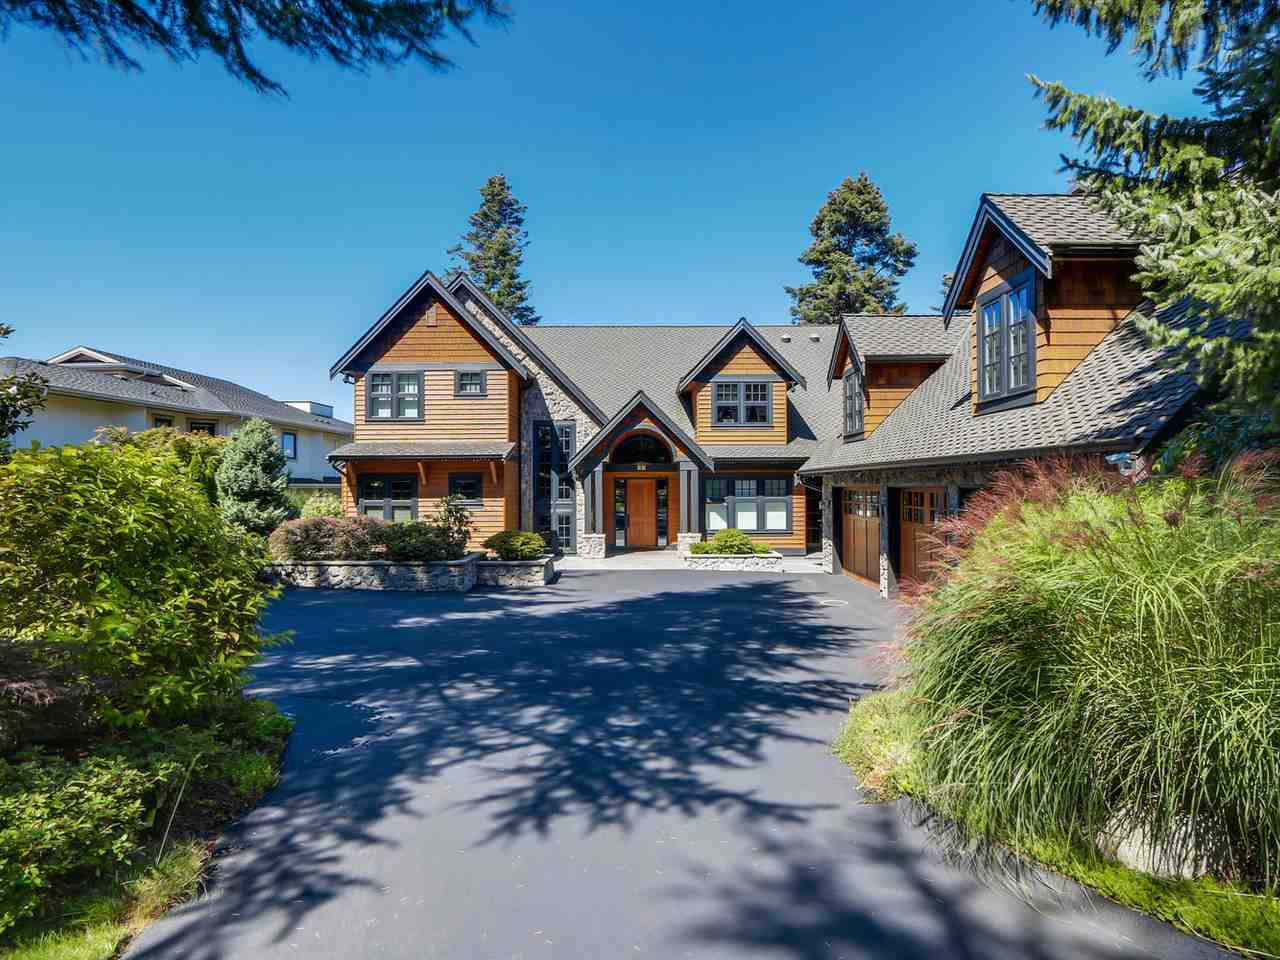 A masterpiece of arts! World first class quality of finishing with great views. Perched over Crescent Beach with outstanding Ocean, Mountain, Sunset & City views. Beautiful Cherry flooring throughout, kitchen is stunning with high end appliances, perfect for entertaining large crowds. Open Great room design with extensive windows capturing the outdoors. Master ensuite is like no other with Infinity bathtub, steam shower, fireplace, sitting area, its own washer/dryer. Billiards room, wet bar, luxury media room, the bright walkout basement. Out door pool, hot tub with extra large sundecks, excellent landscaping, coach house suite for guests or nanny, absolutely private front & back yard. Close to Elgin Secondary.